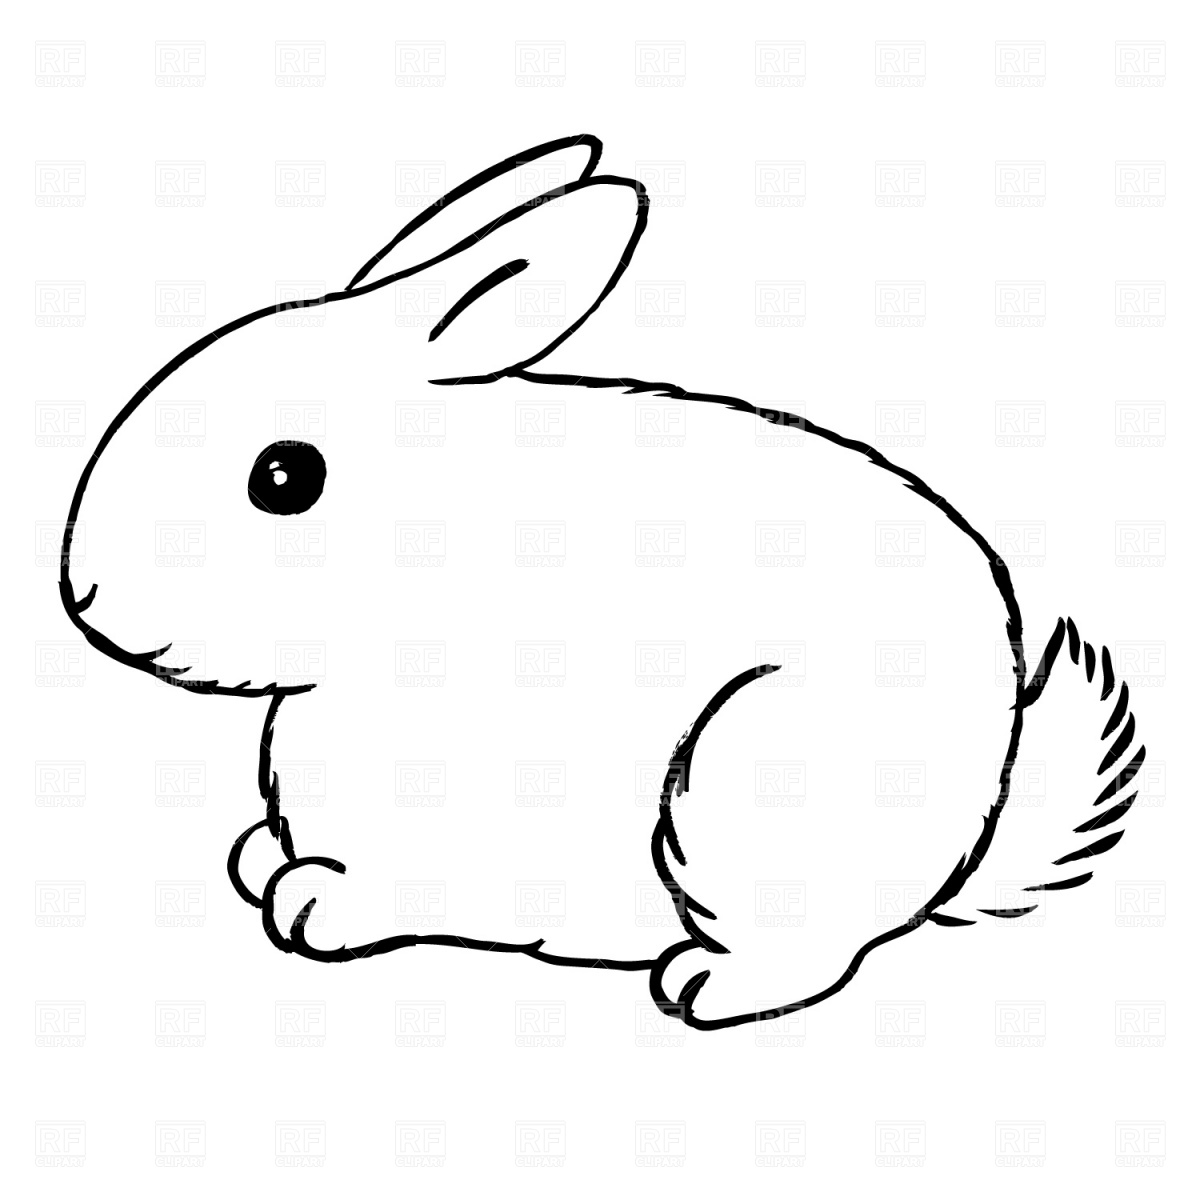 Clipart bunny pictures.